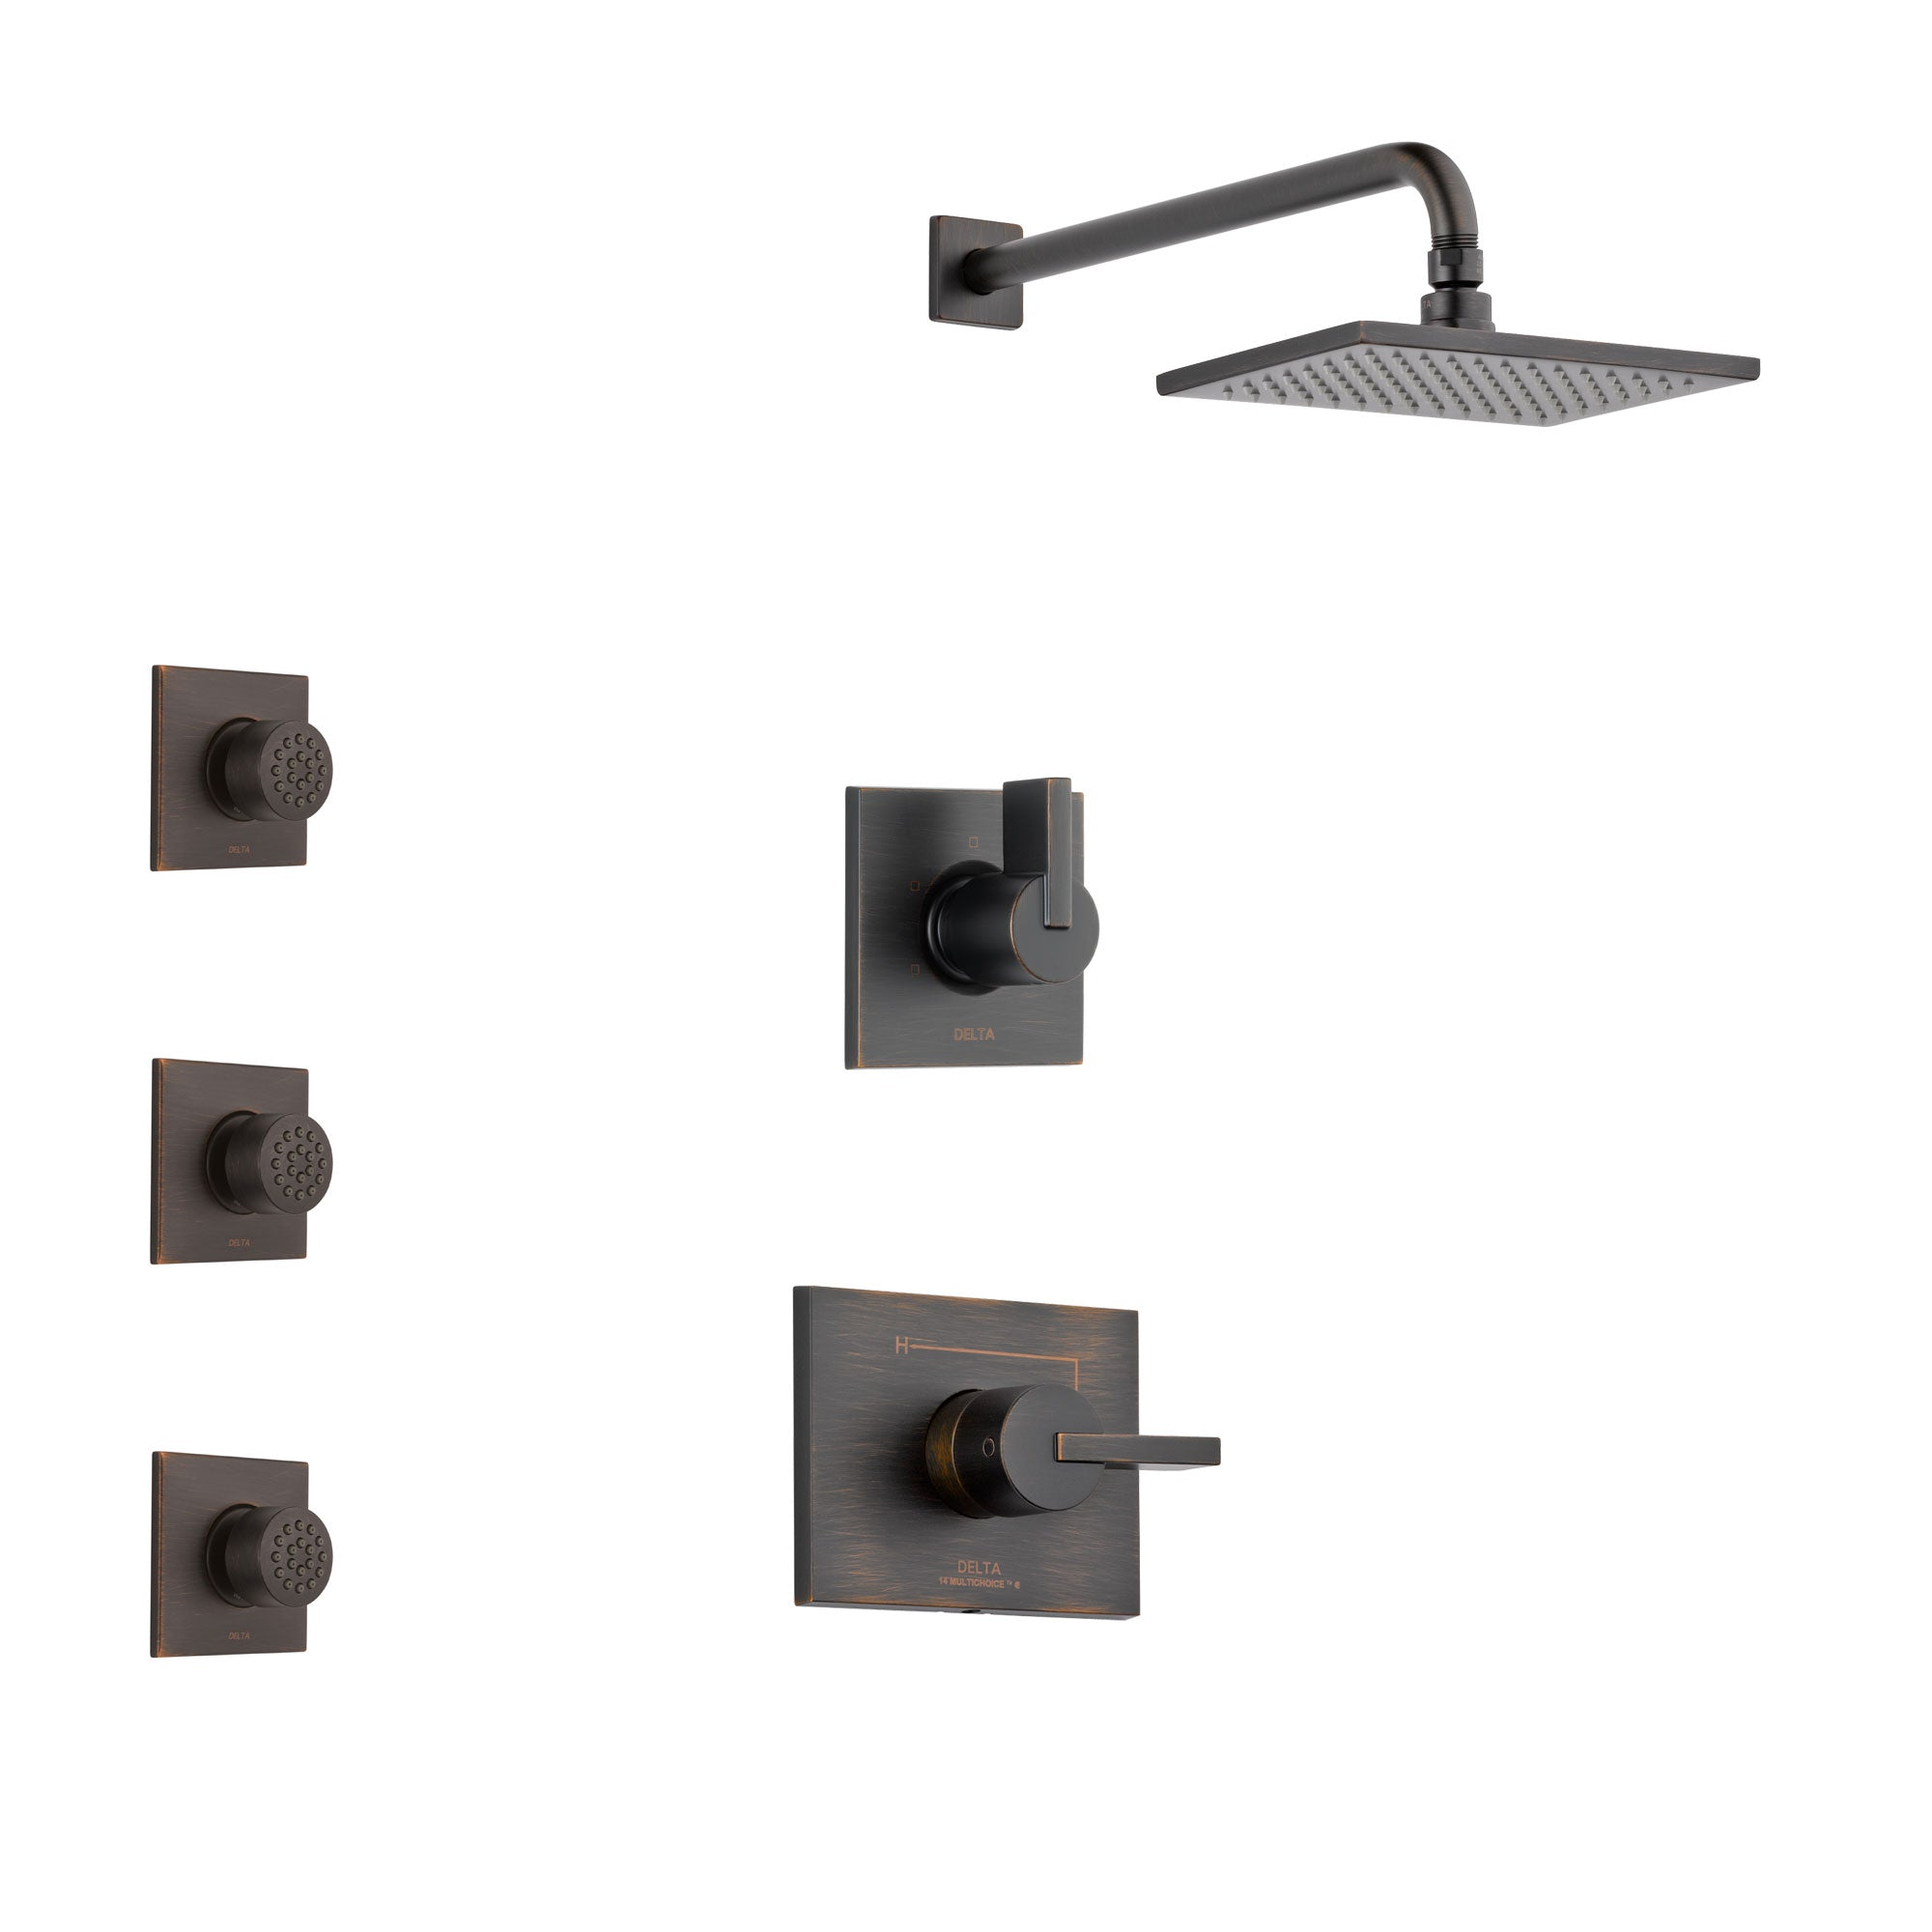 Delta Vero Venetian Bronze Finish Shower System with Control Handle, 3-Setting Diverter, Showerhead, and 3 Body Sprays SS142531RB1